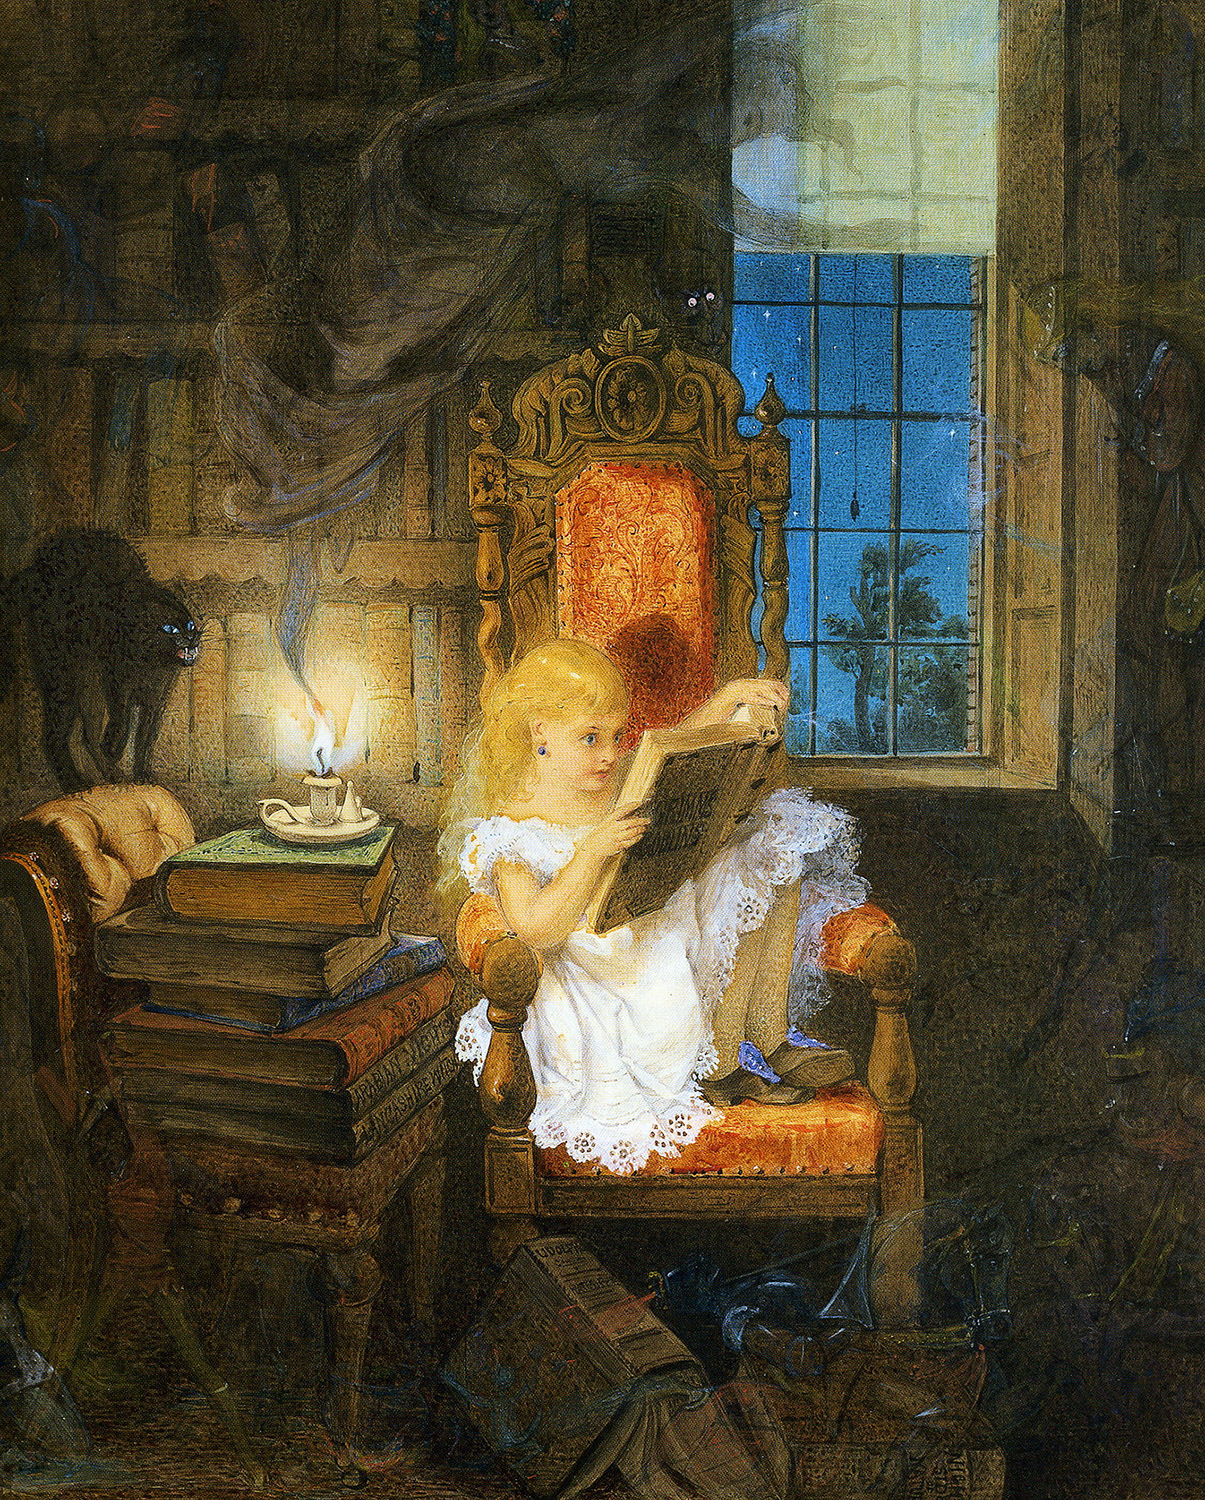 Girl reading book by candlelight